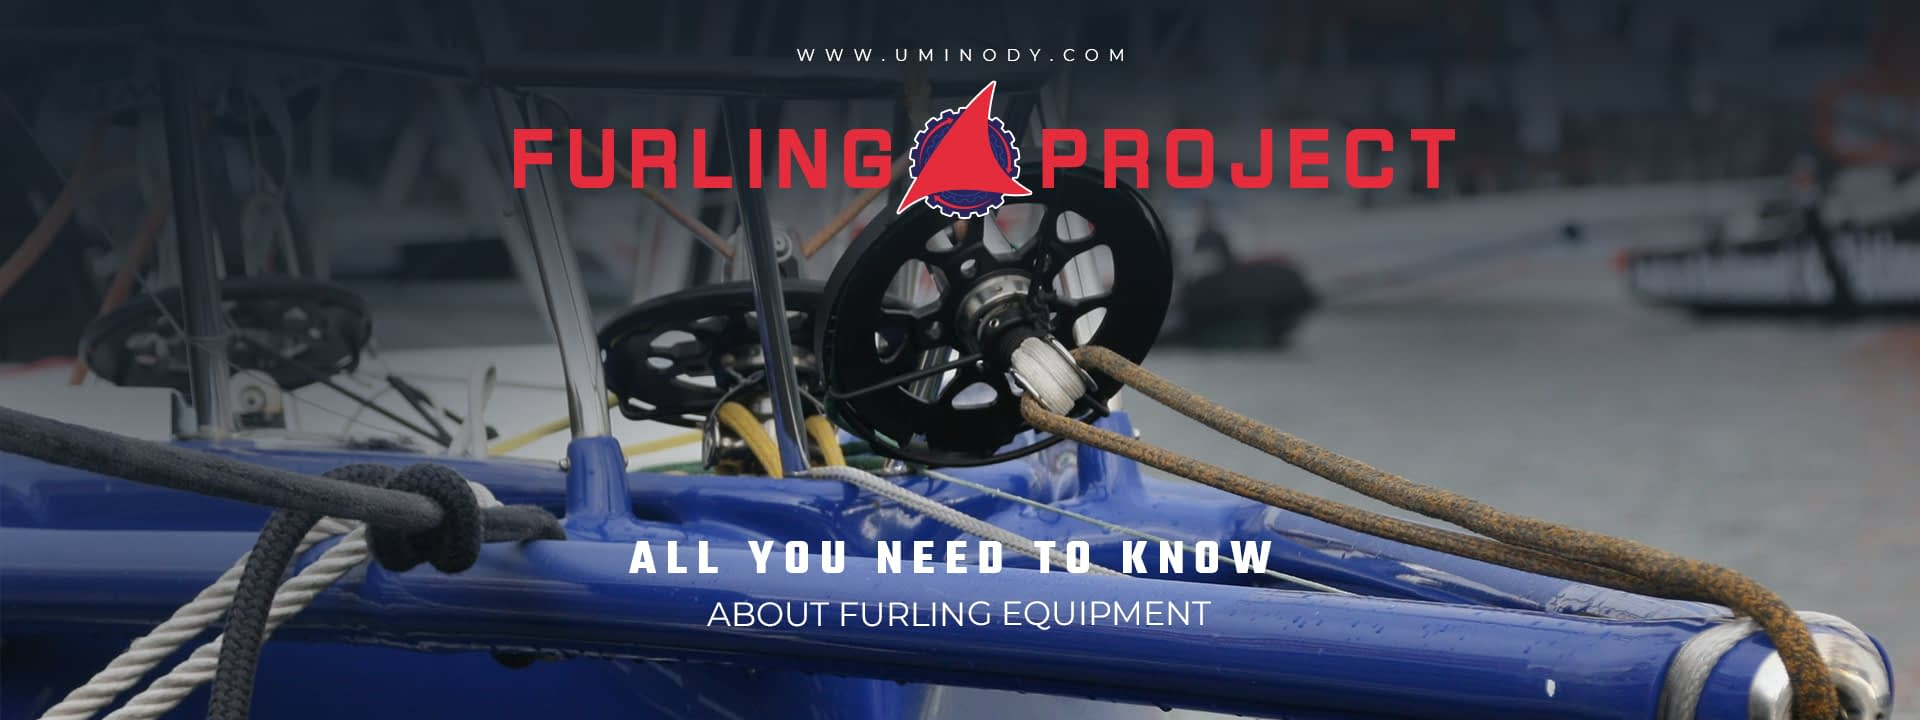 Furling Project - Your Source for Information on Sailboat Furlers